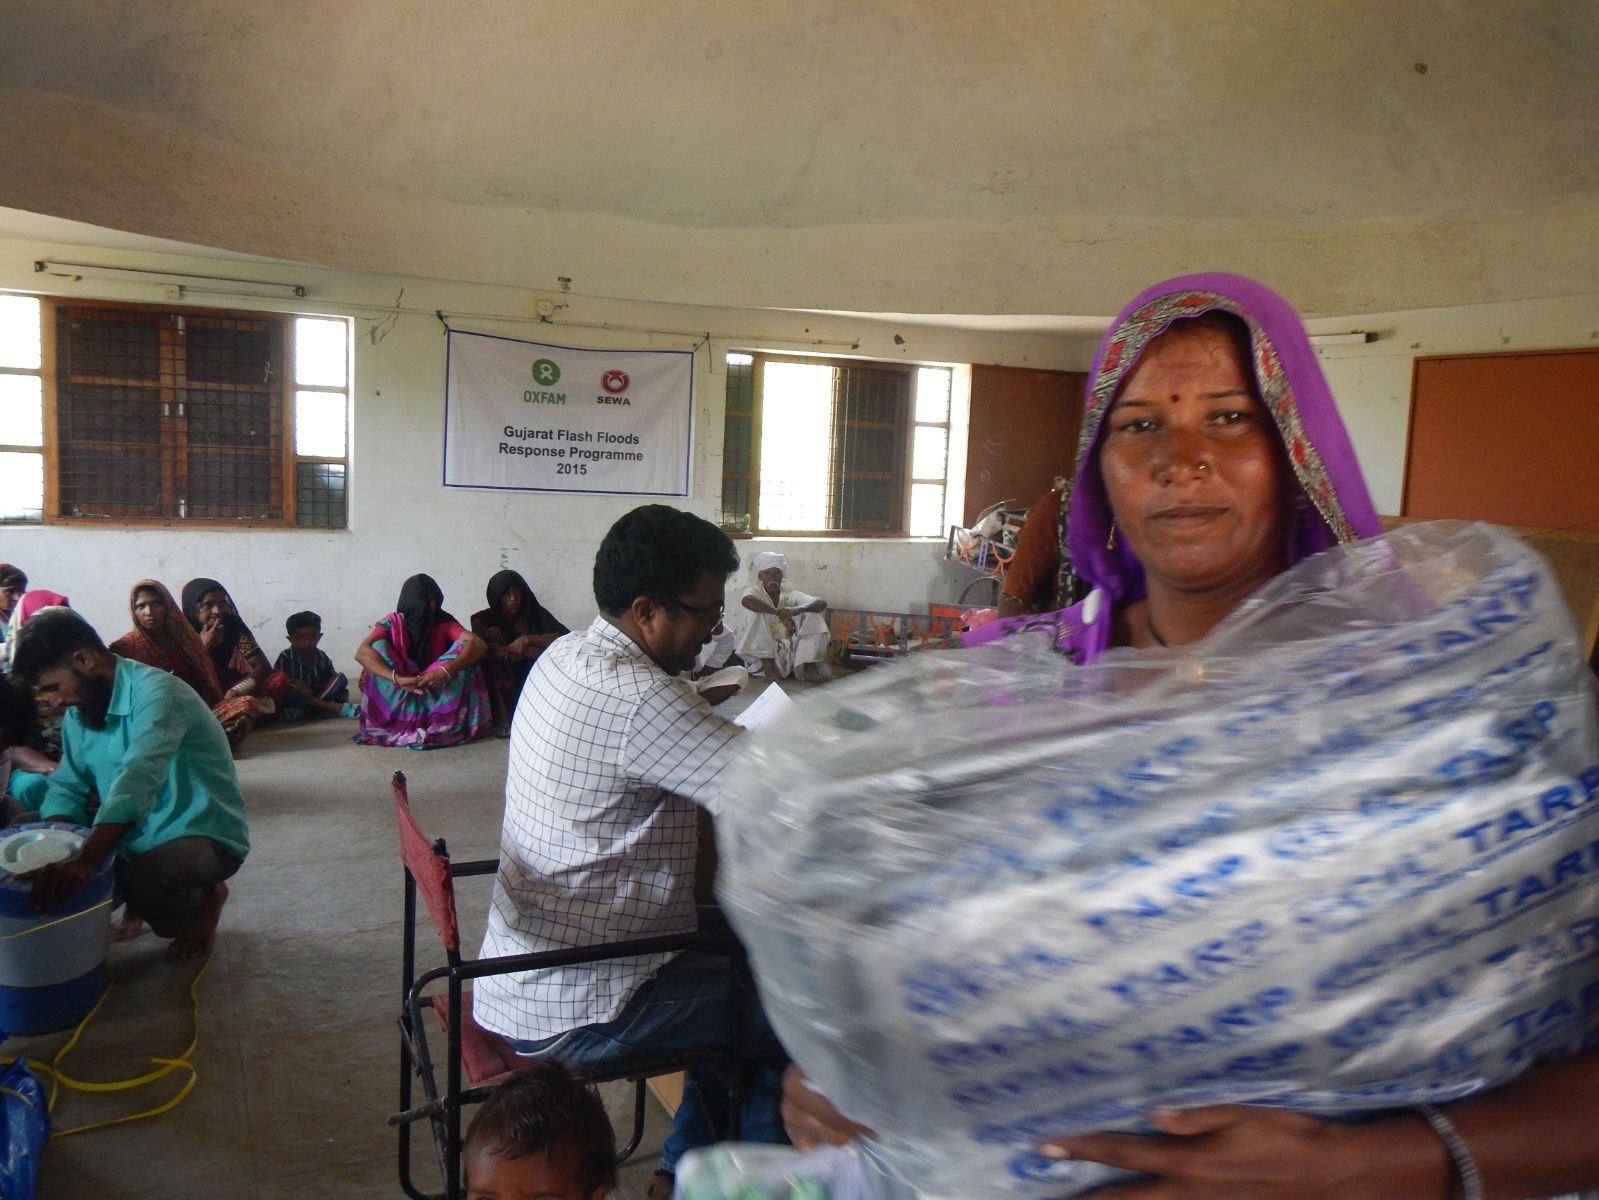 Oxfam providing relief to survivors of Gujarat floods